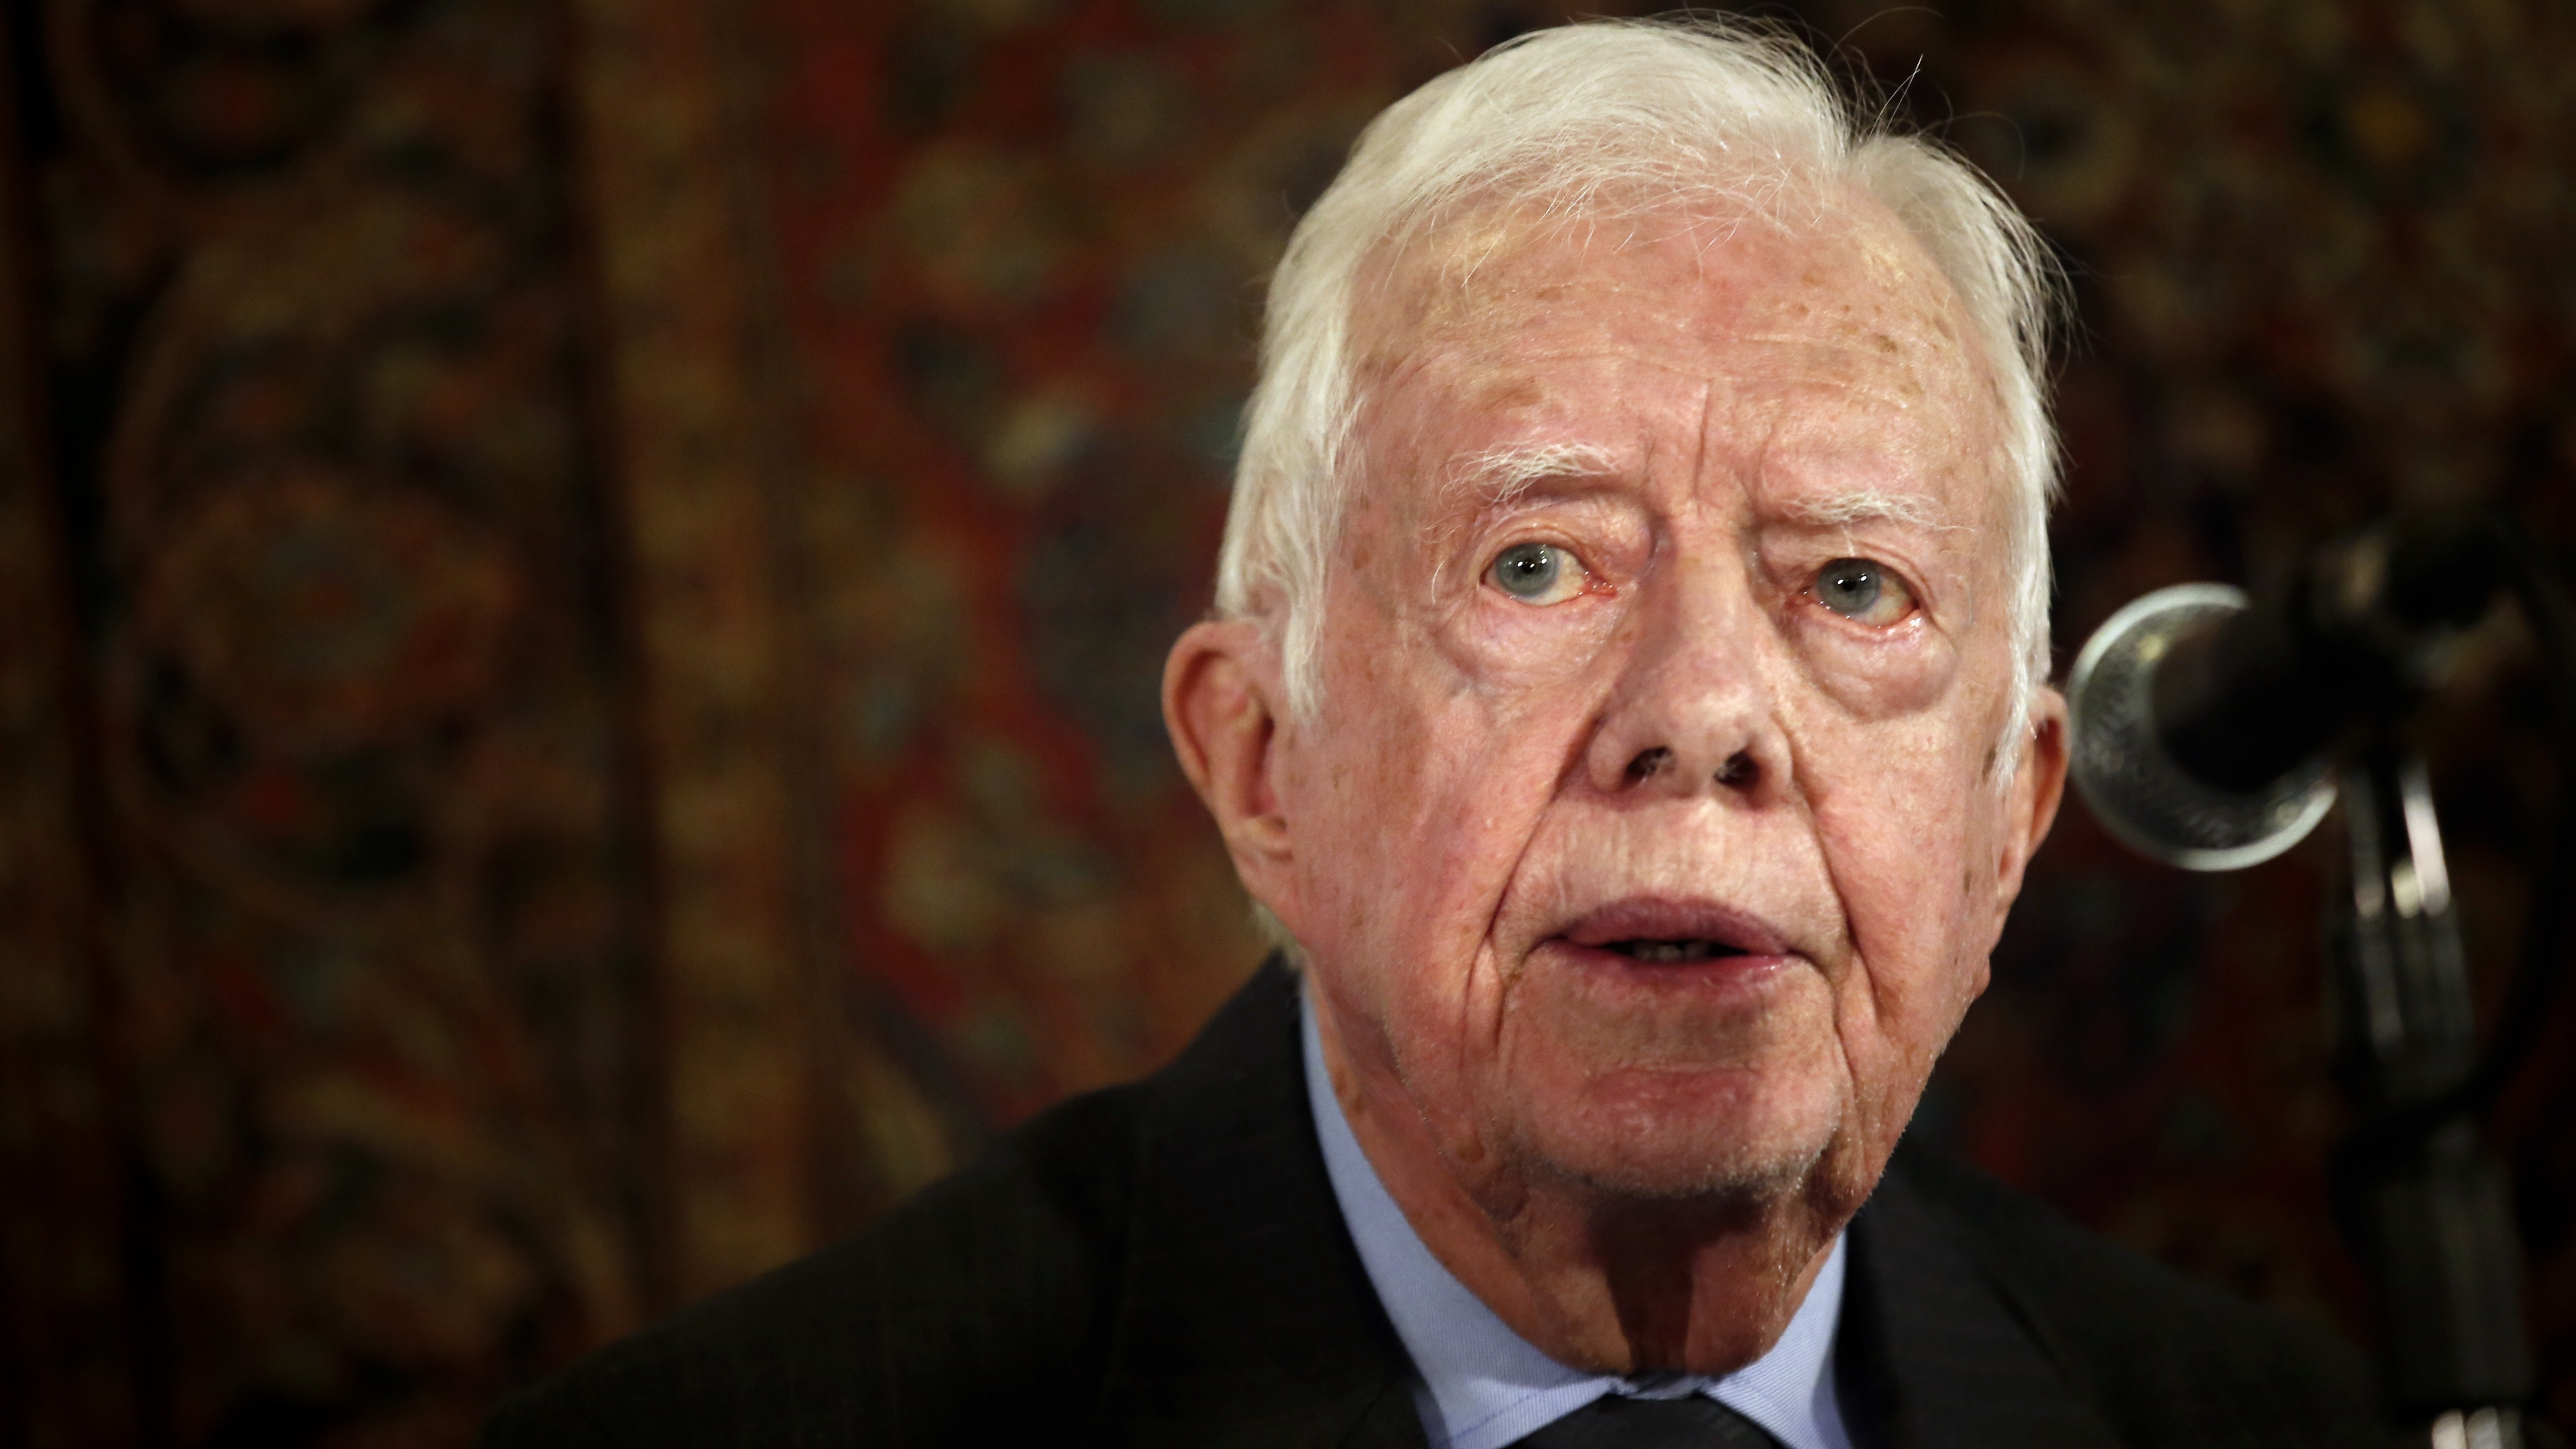 Former President Jimmy Carter speaks at a press conference in Jerusalem on May 2. Carter announced Wednesday that he has cancer. Thomas Coex/AFP/Getty Images